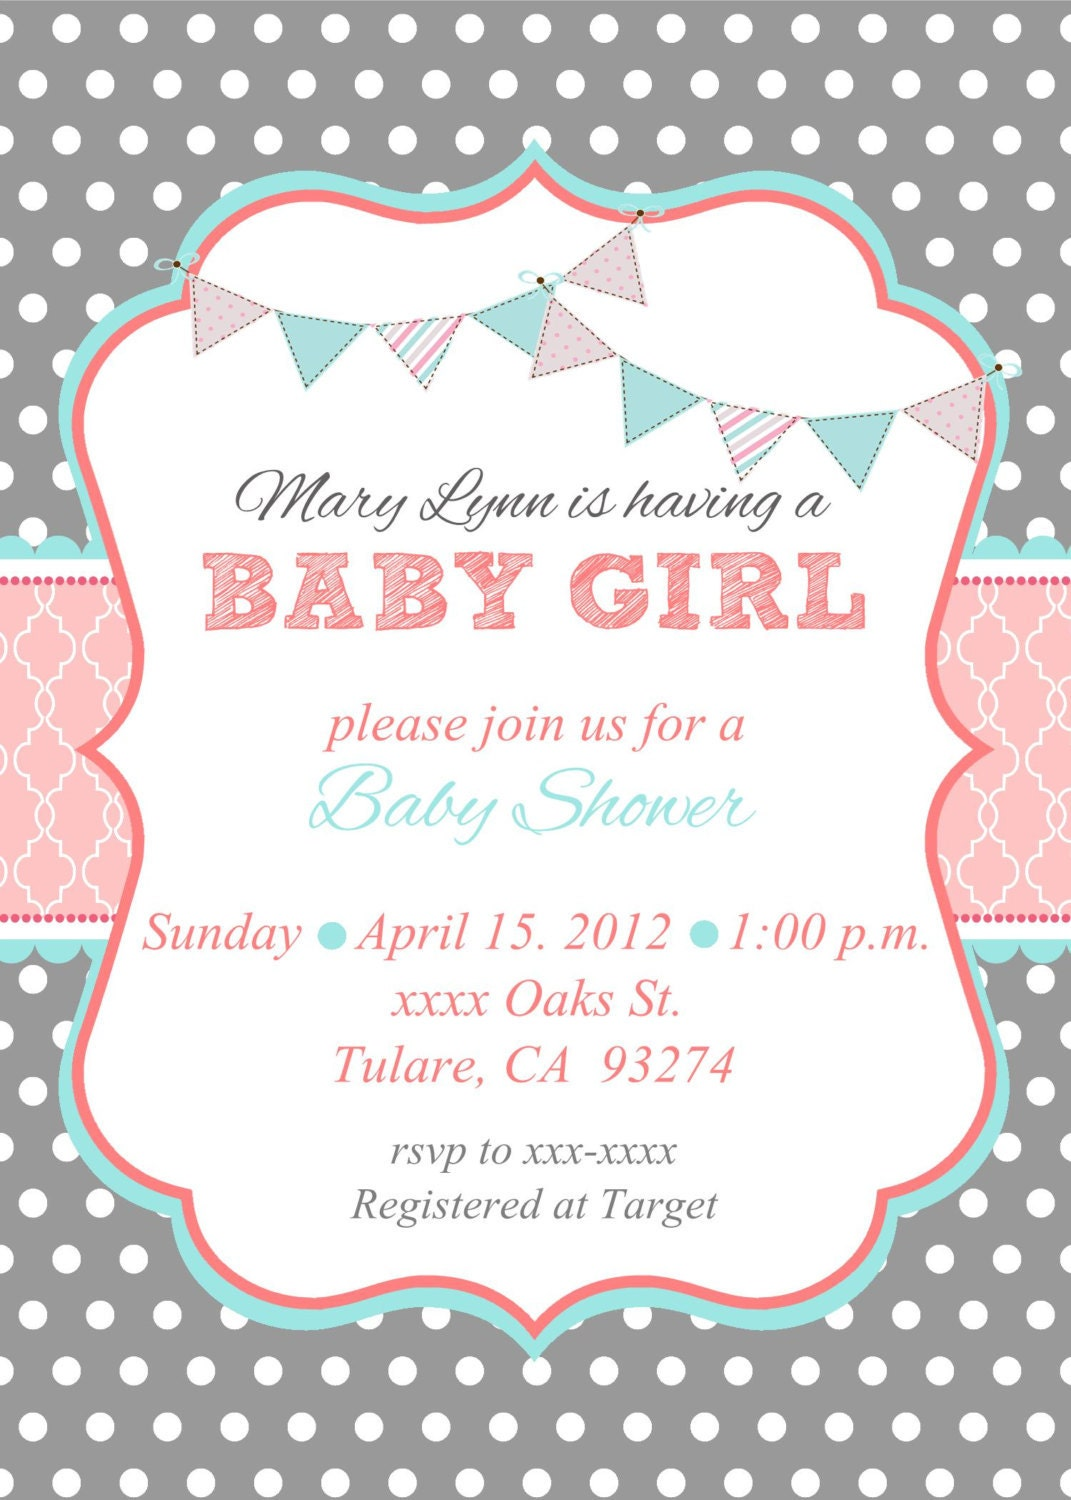 Baby Shower Invitation For Girl can inspire you to create best invitation template